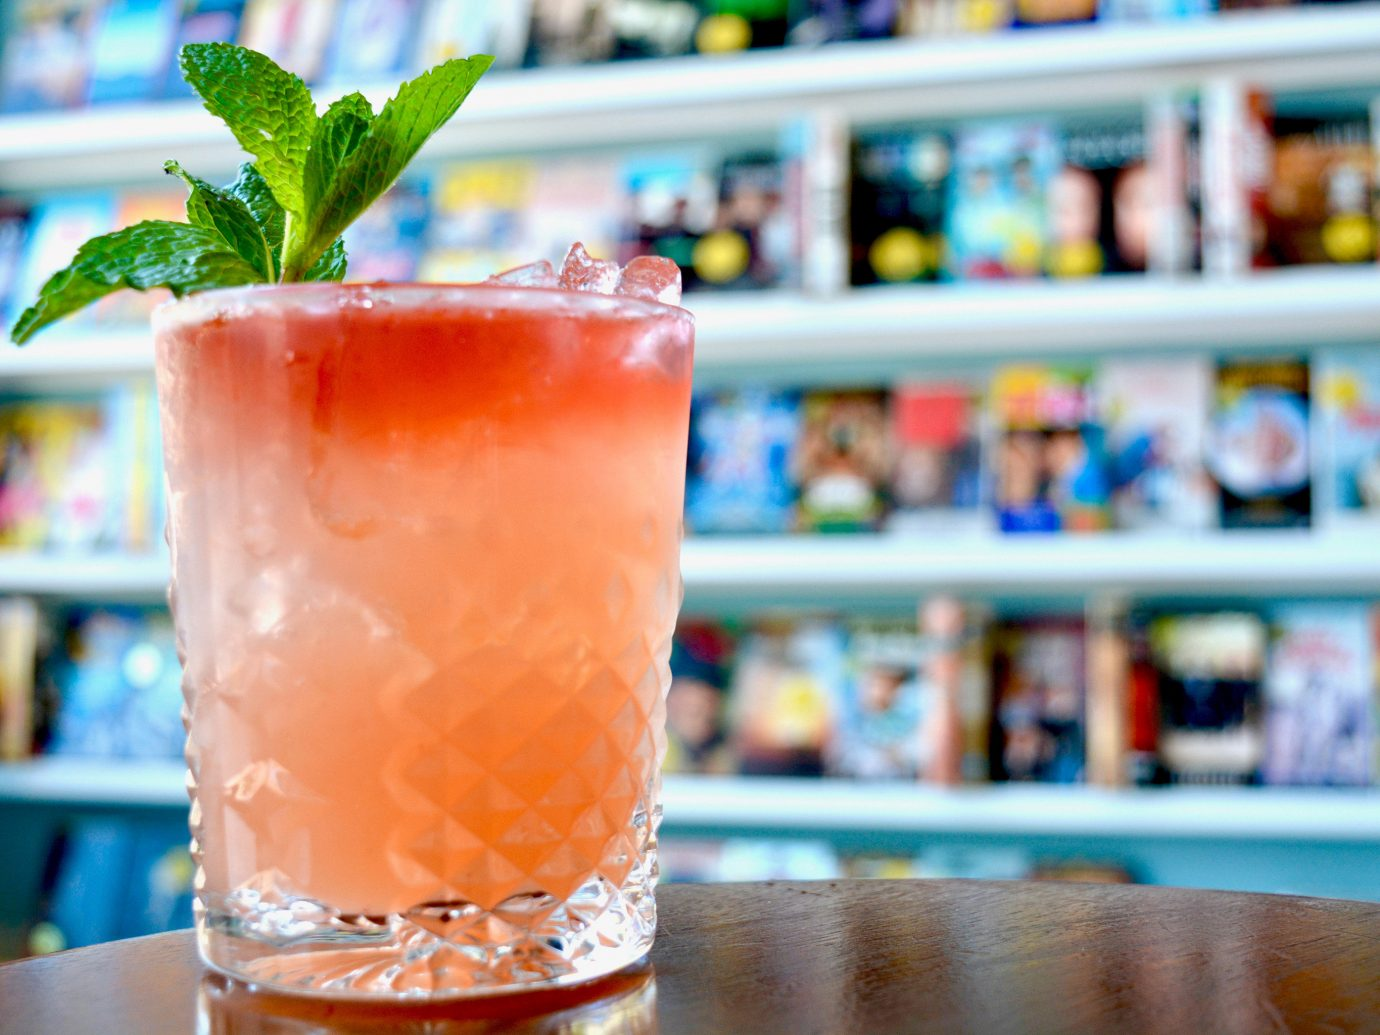 Boutique Hotels Fall Travel Trip Ideas Weekend Getaways cup Drink cocktail non alcoholic beverage mai tai orange juice orange drink cocktail garnish punch sex on the beach bay breeze sea breeze beverage close